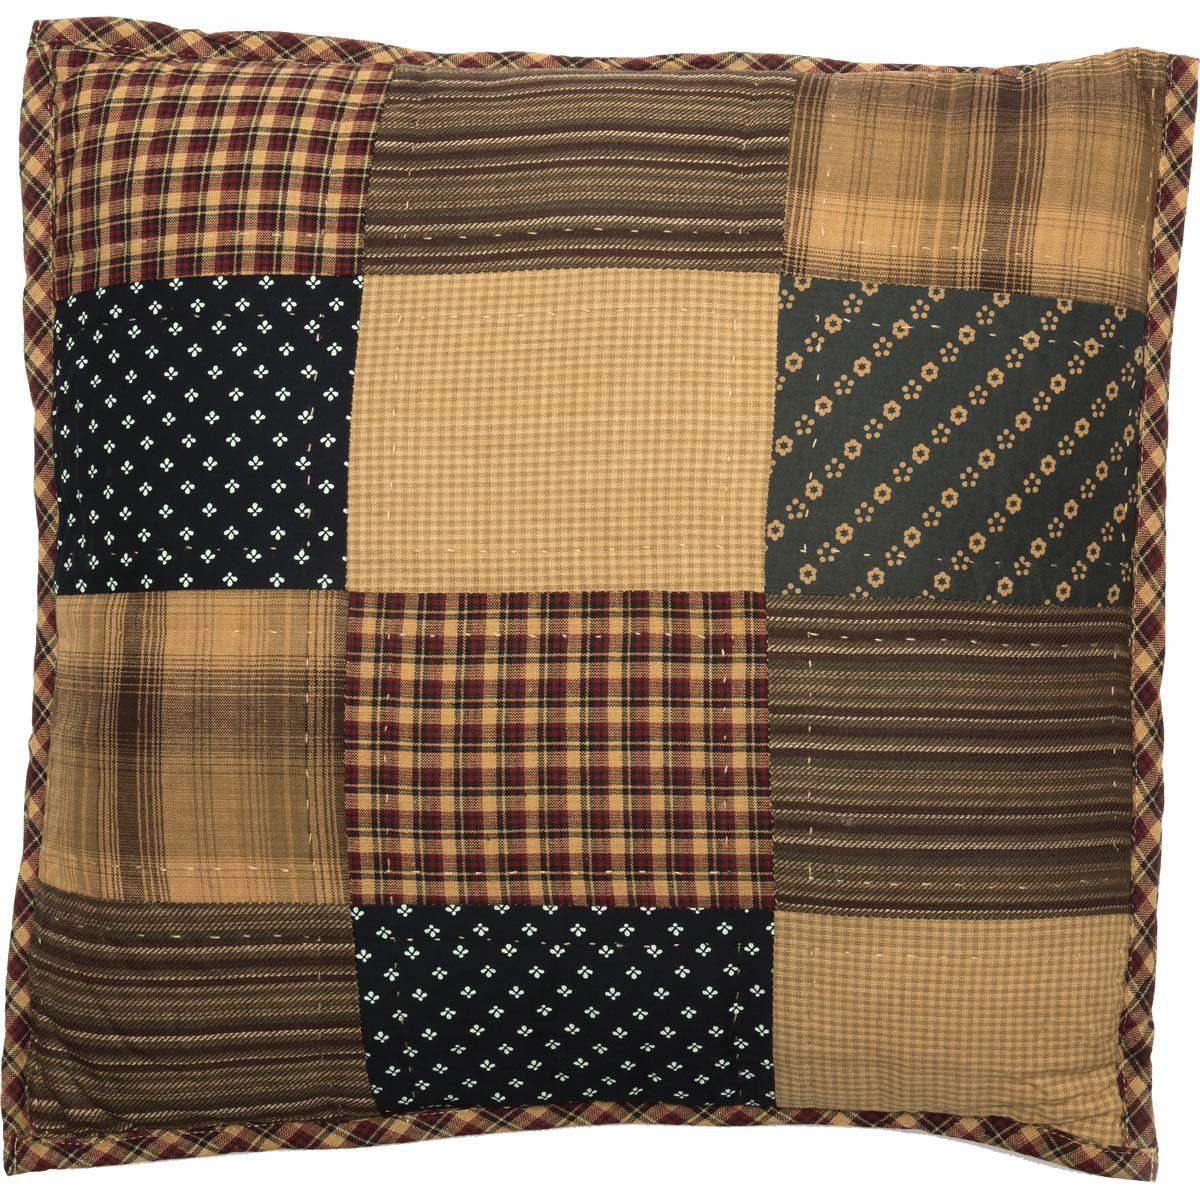 Patriotic Patch Quilted Pillow.